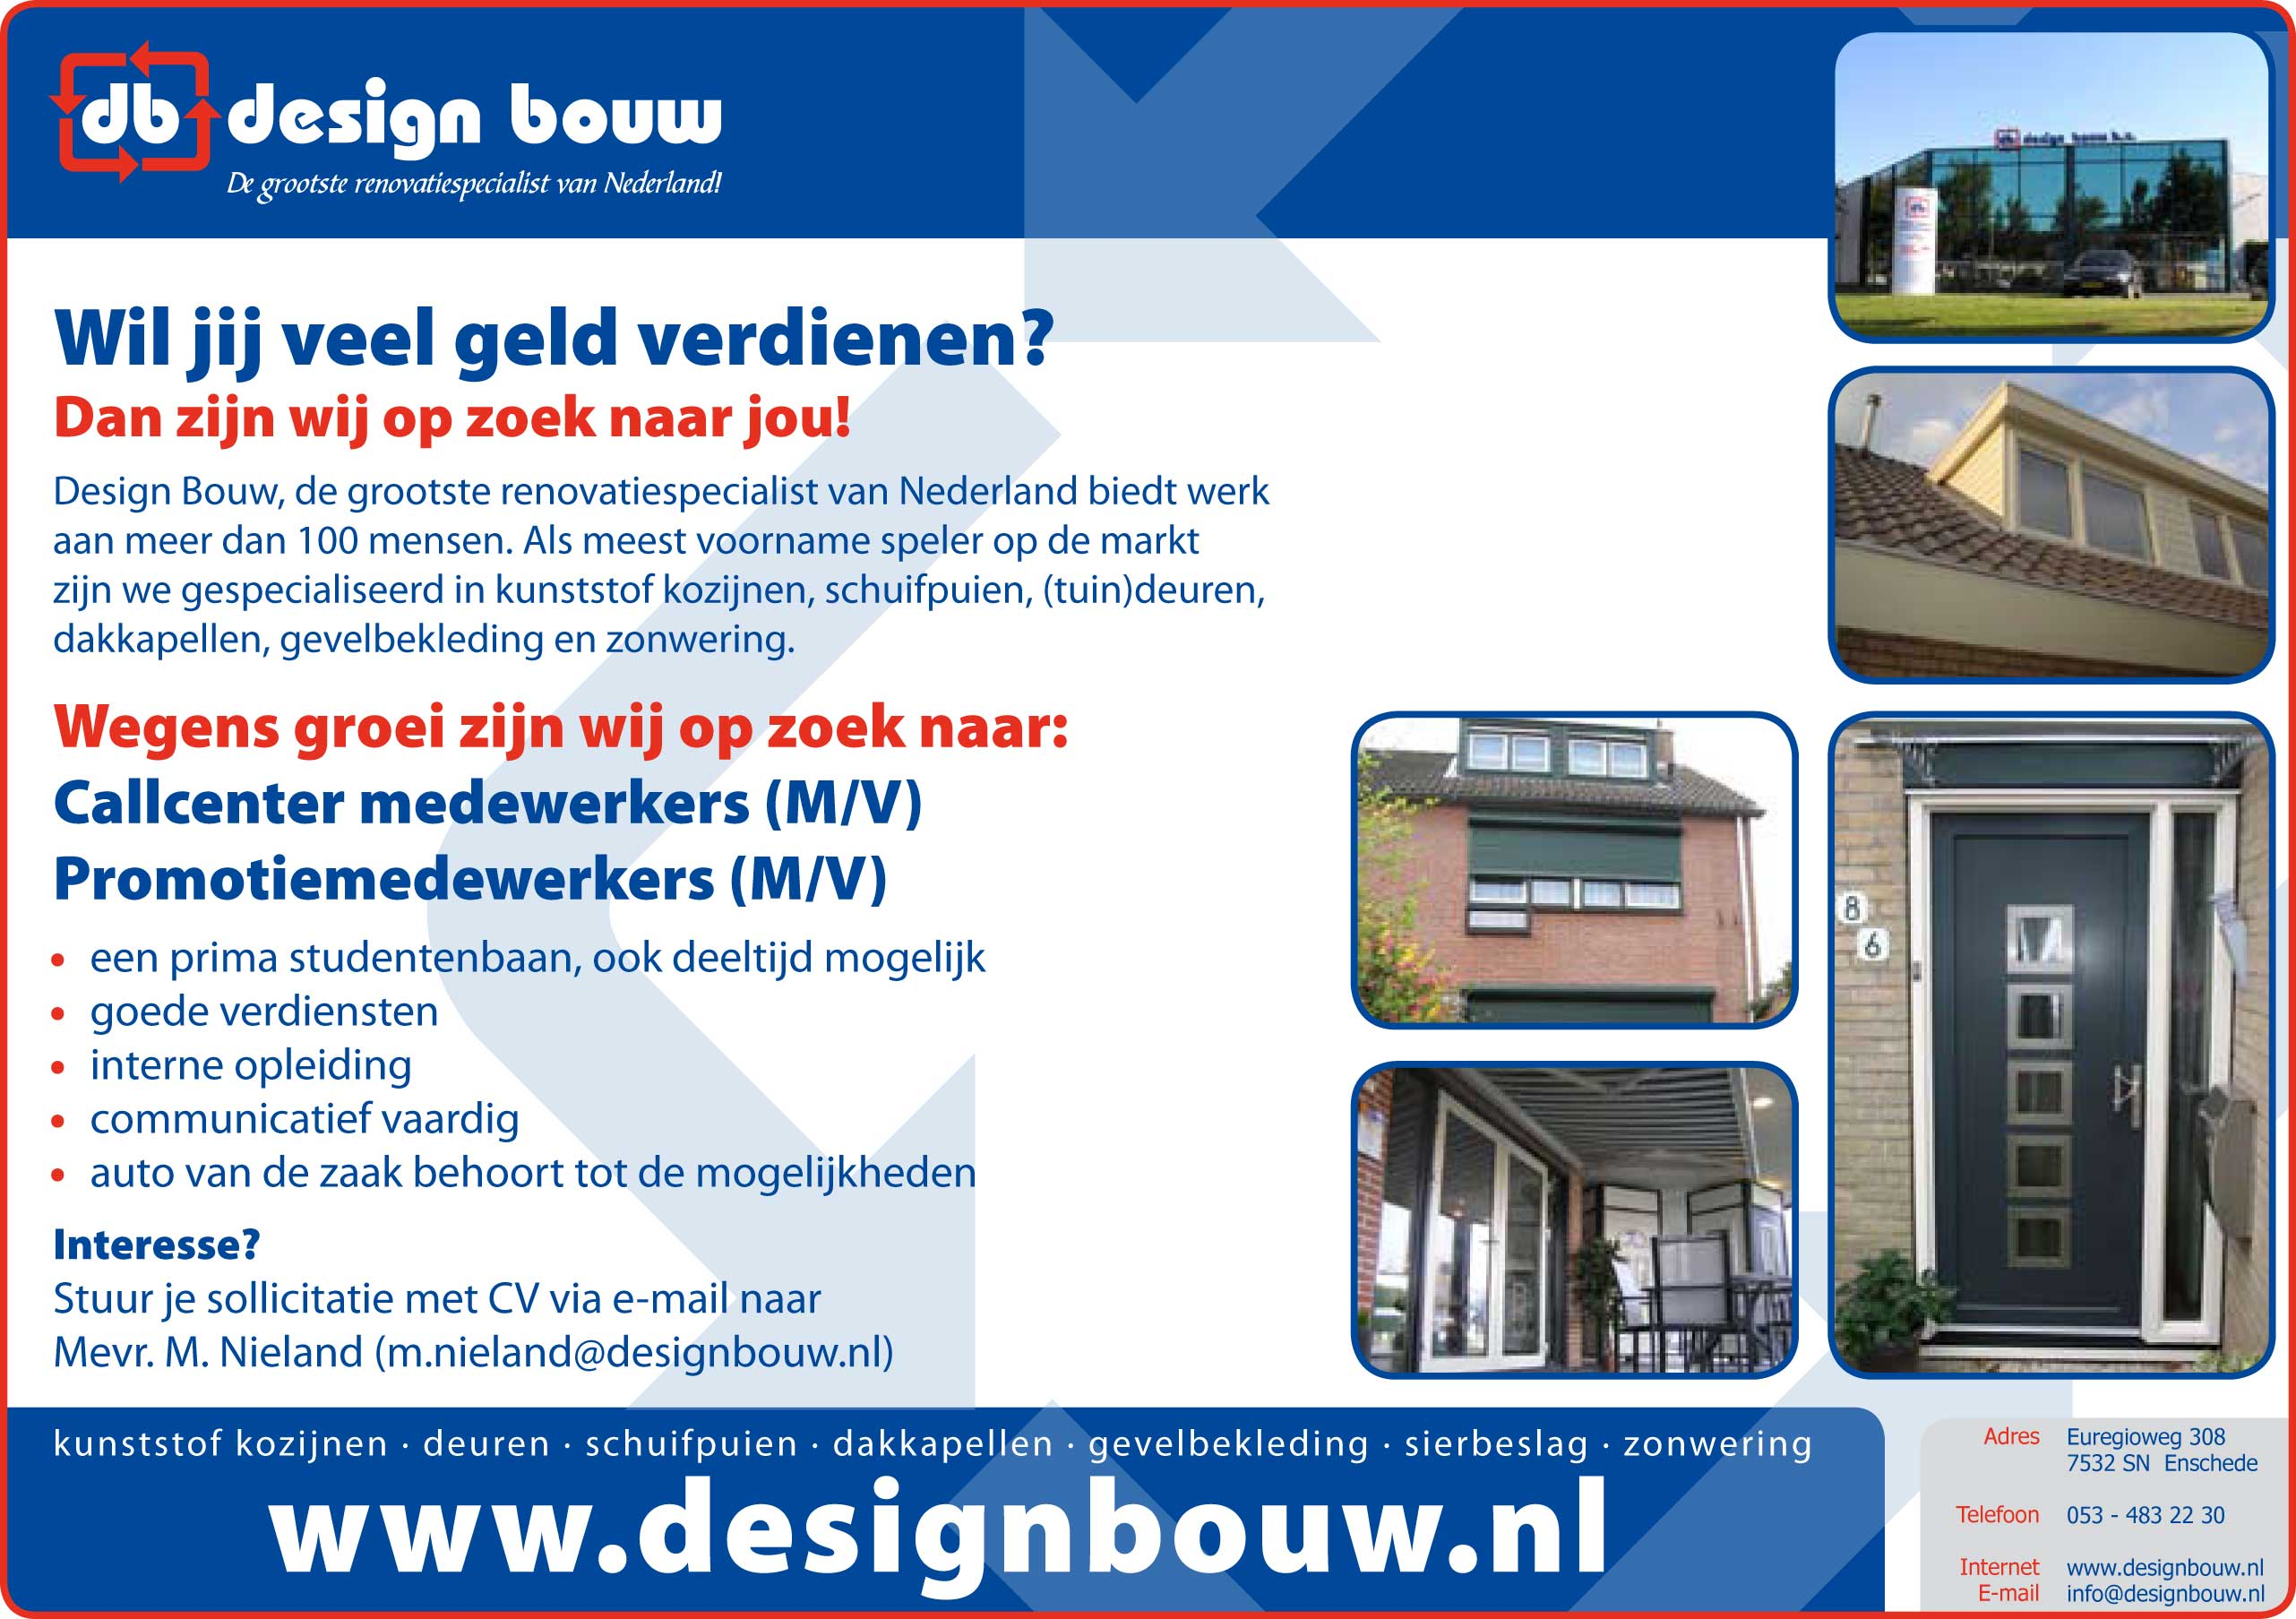 DB vacature 1Vacatures